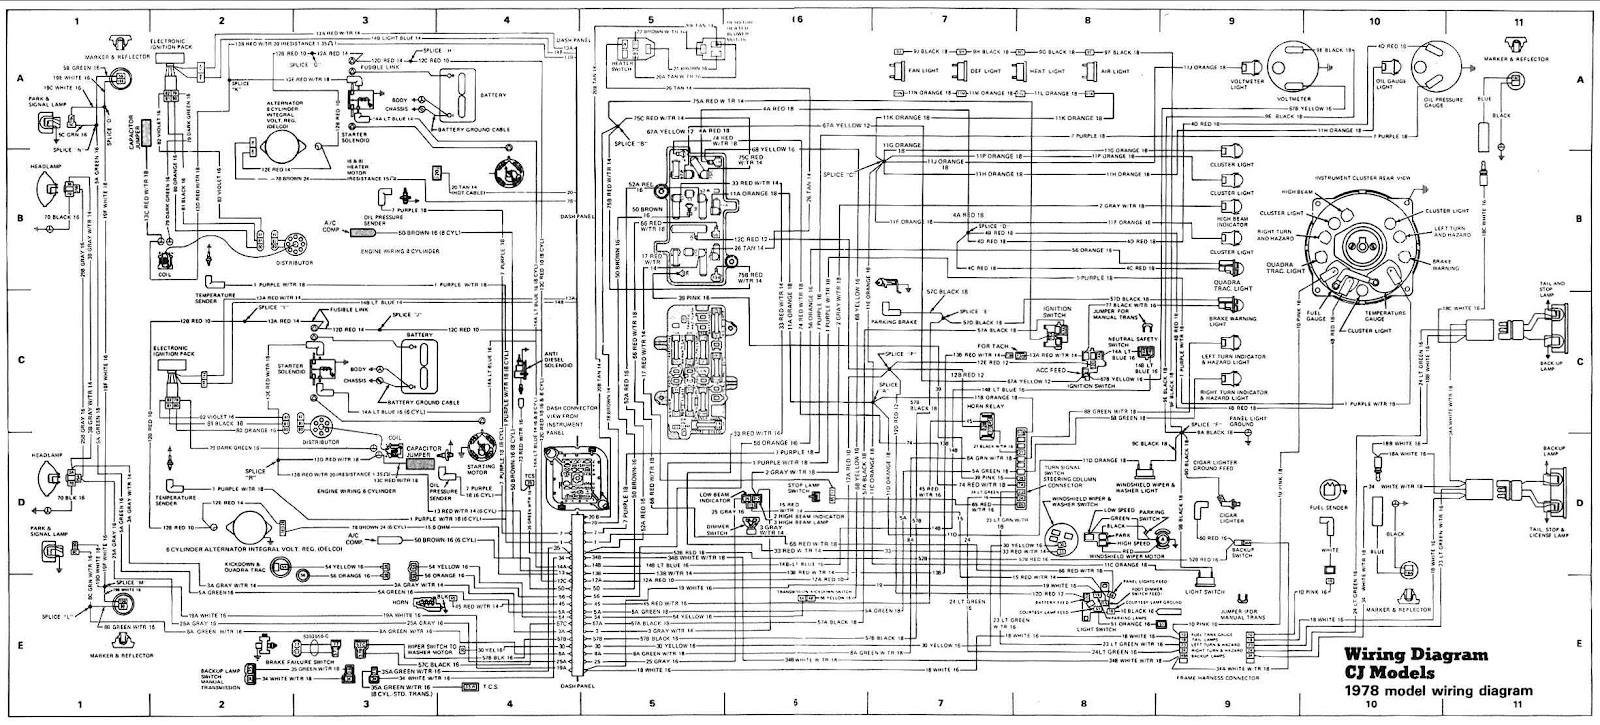 jeep electrical wiring    jeep    cj models 1978 complete    electrical       wiring    diagram     jeep    cj models 1978 complete    electrical       wiring    diagram